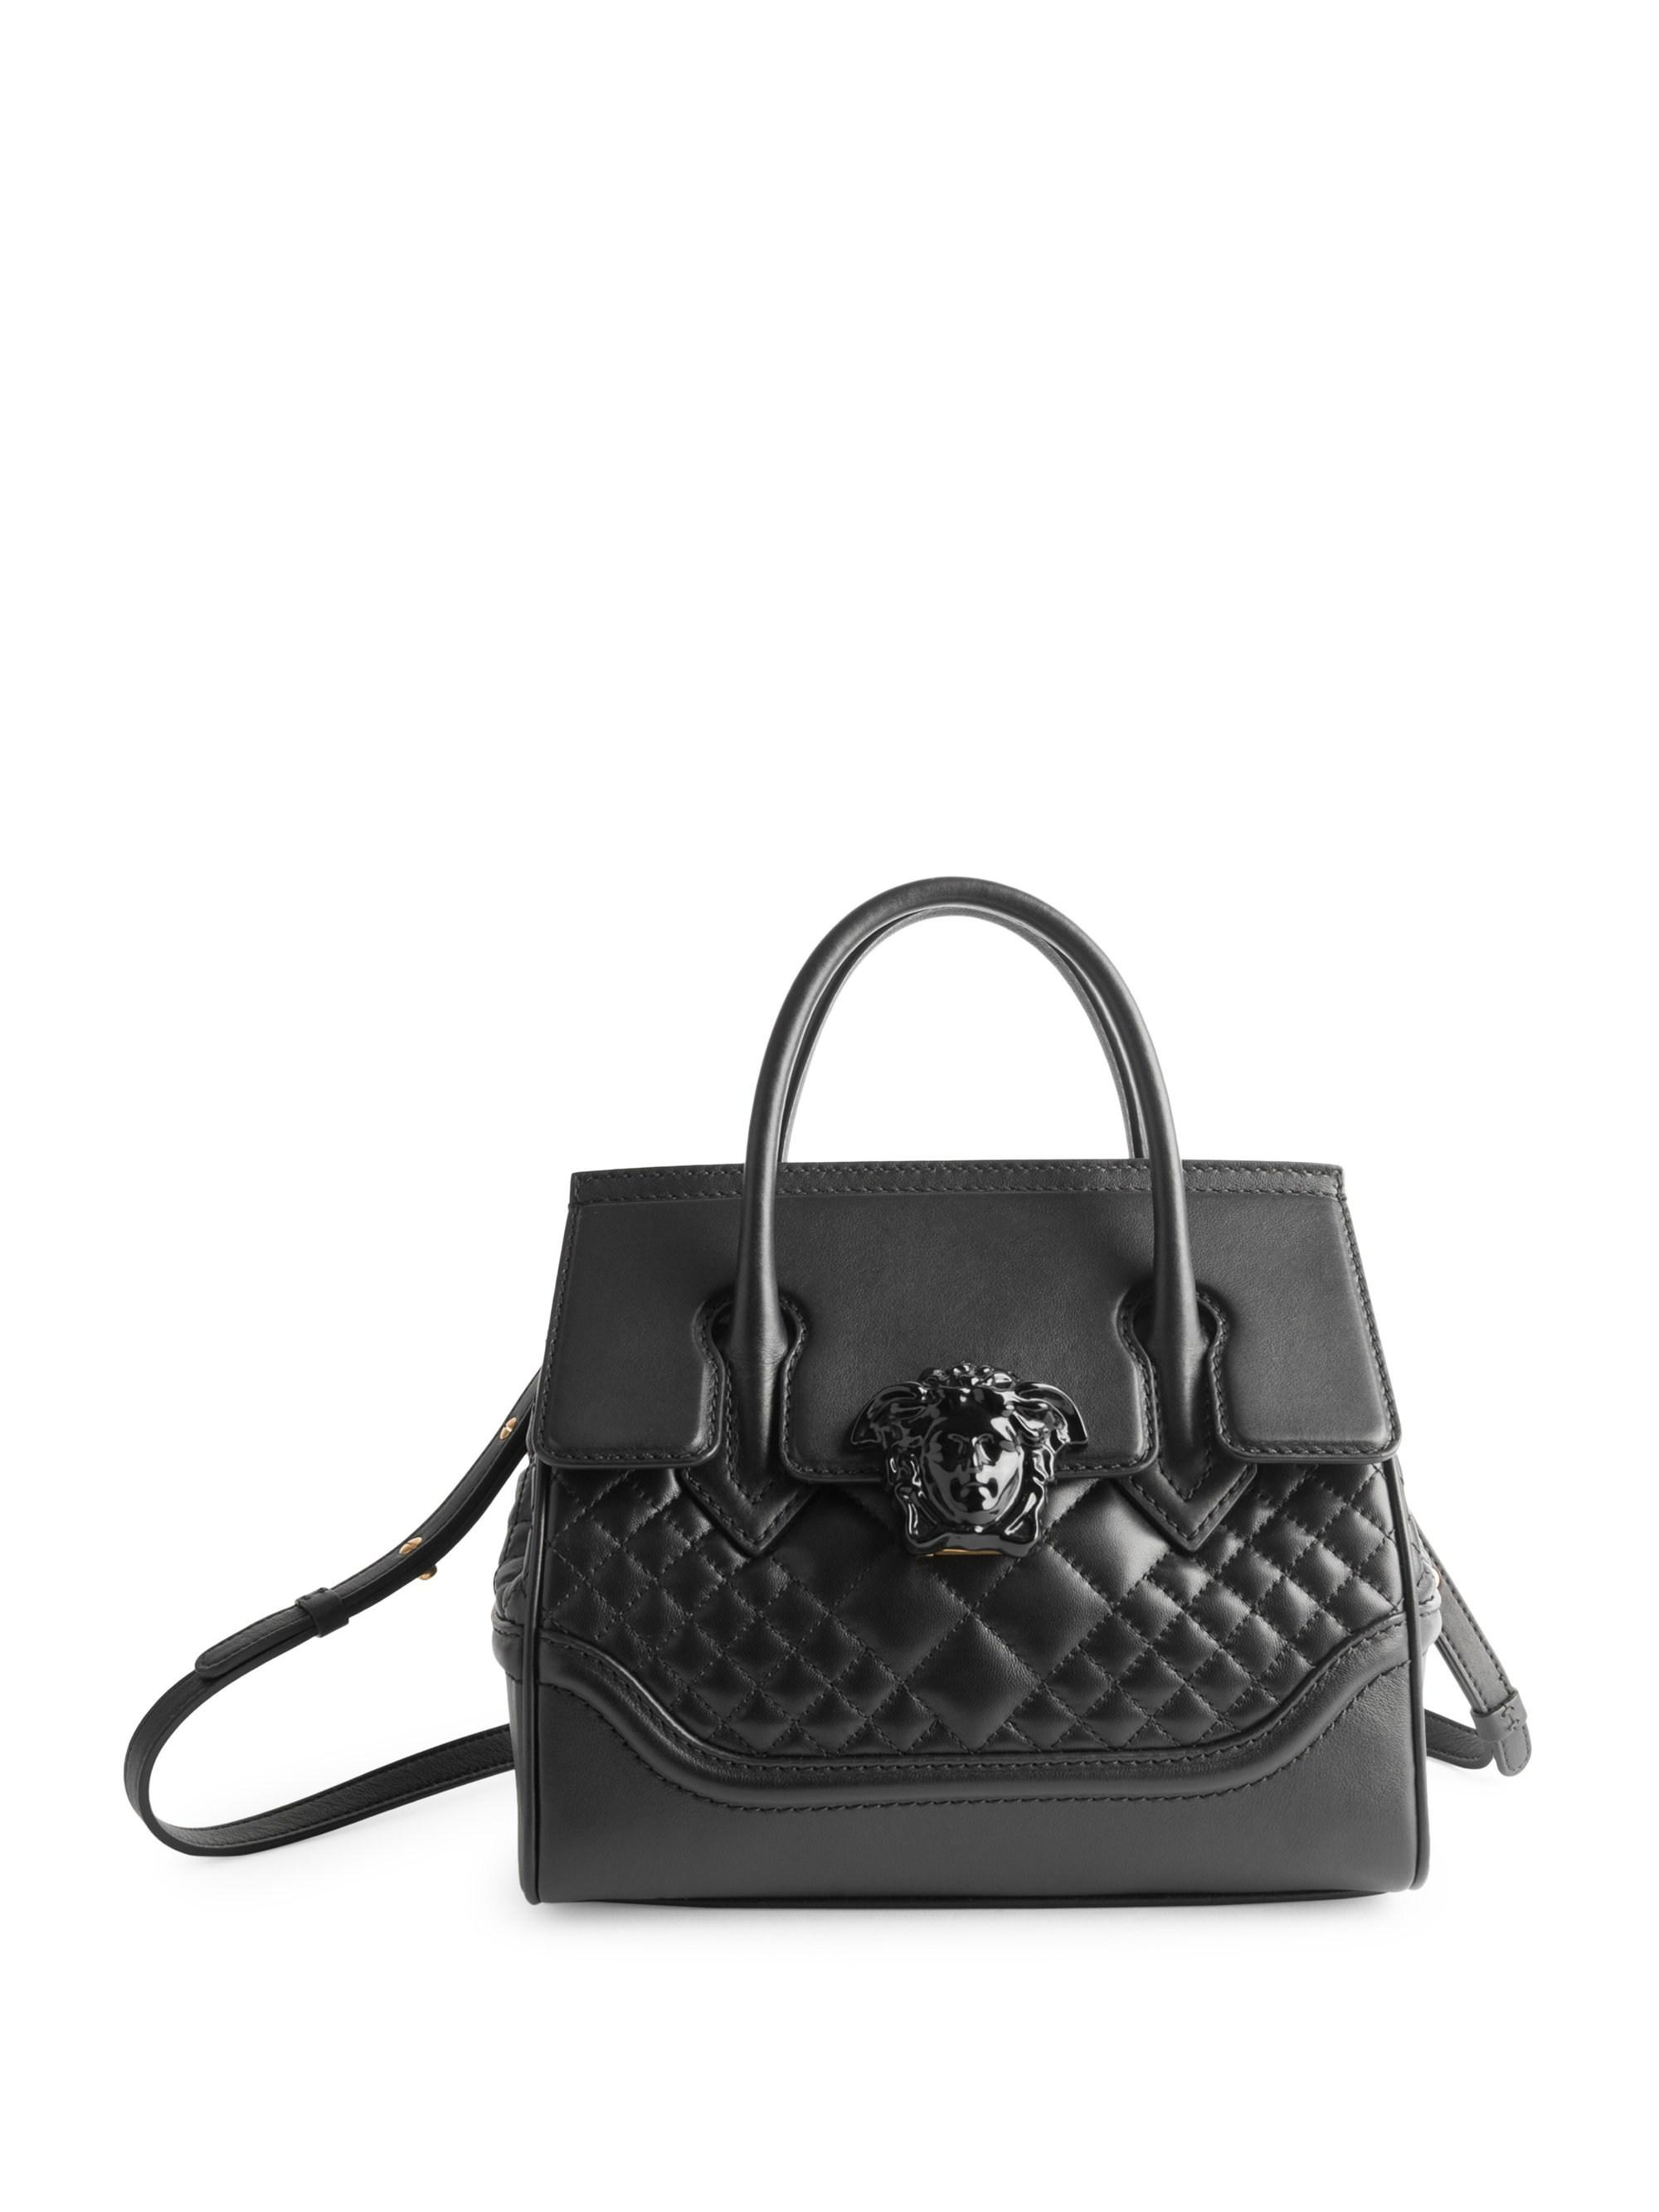 7e4f5fdae167 Versace Quilted Palazzo Empire Top Handle Bag in Black - Lyst